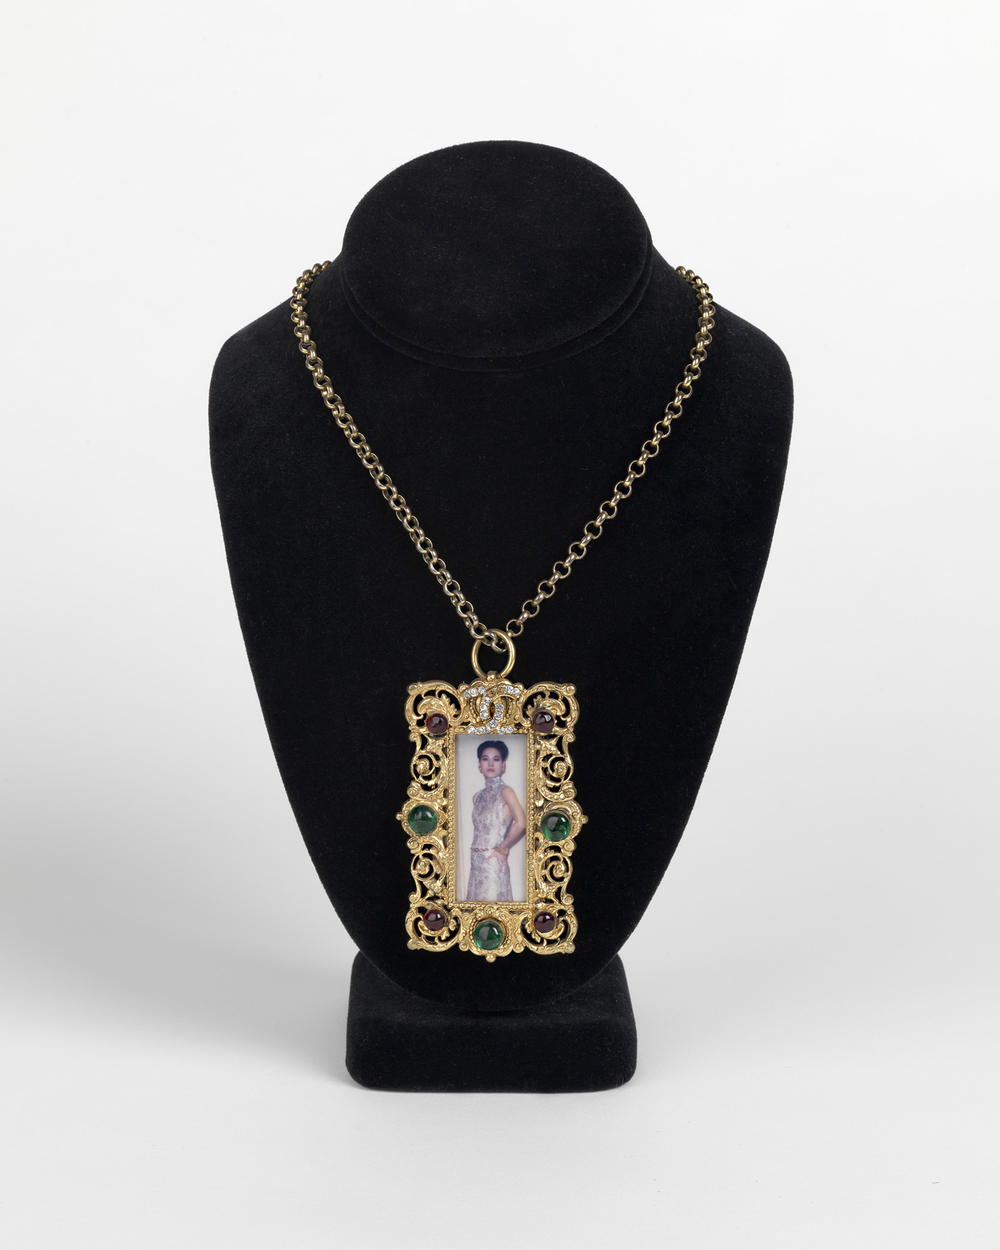 Chanel pendant with an original photograph. Circa 1970